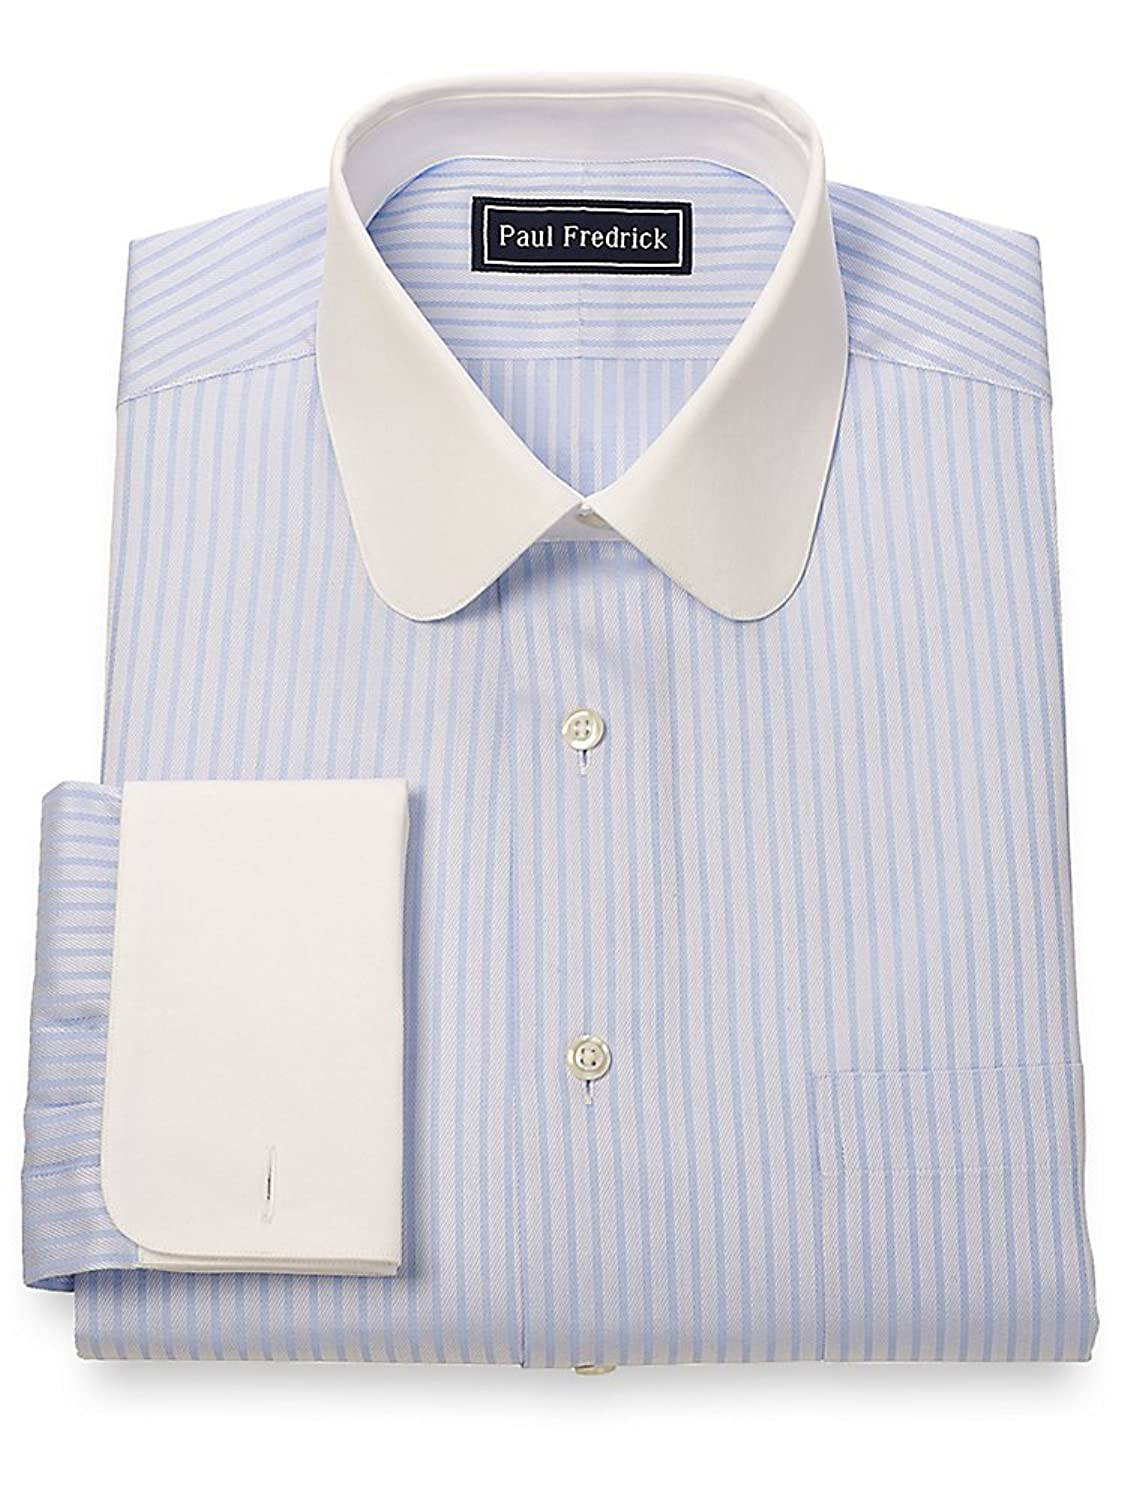 Cotton Club Collar French Cuff Dress Shirt $64.95 AT vintagedancer.com